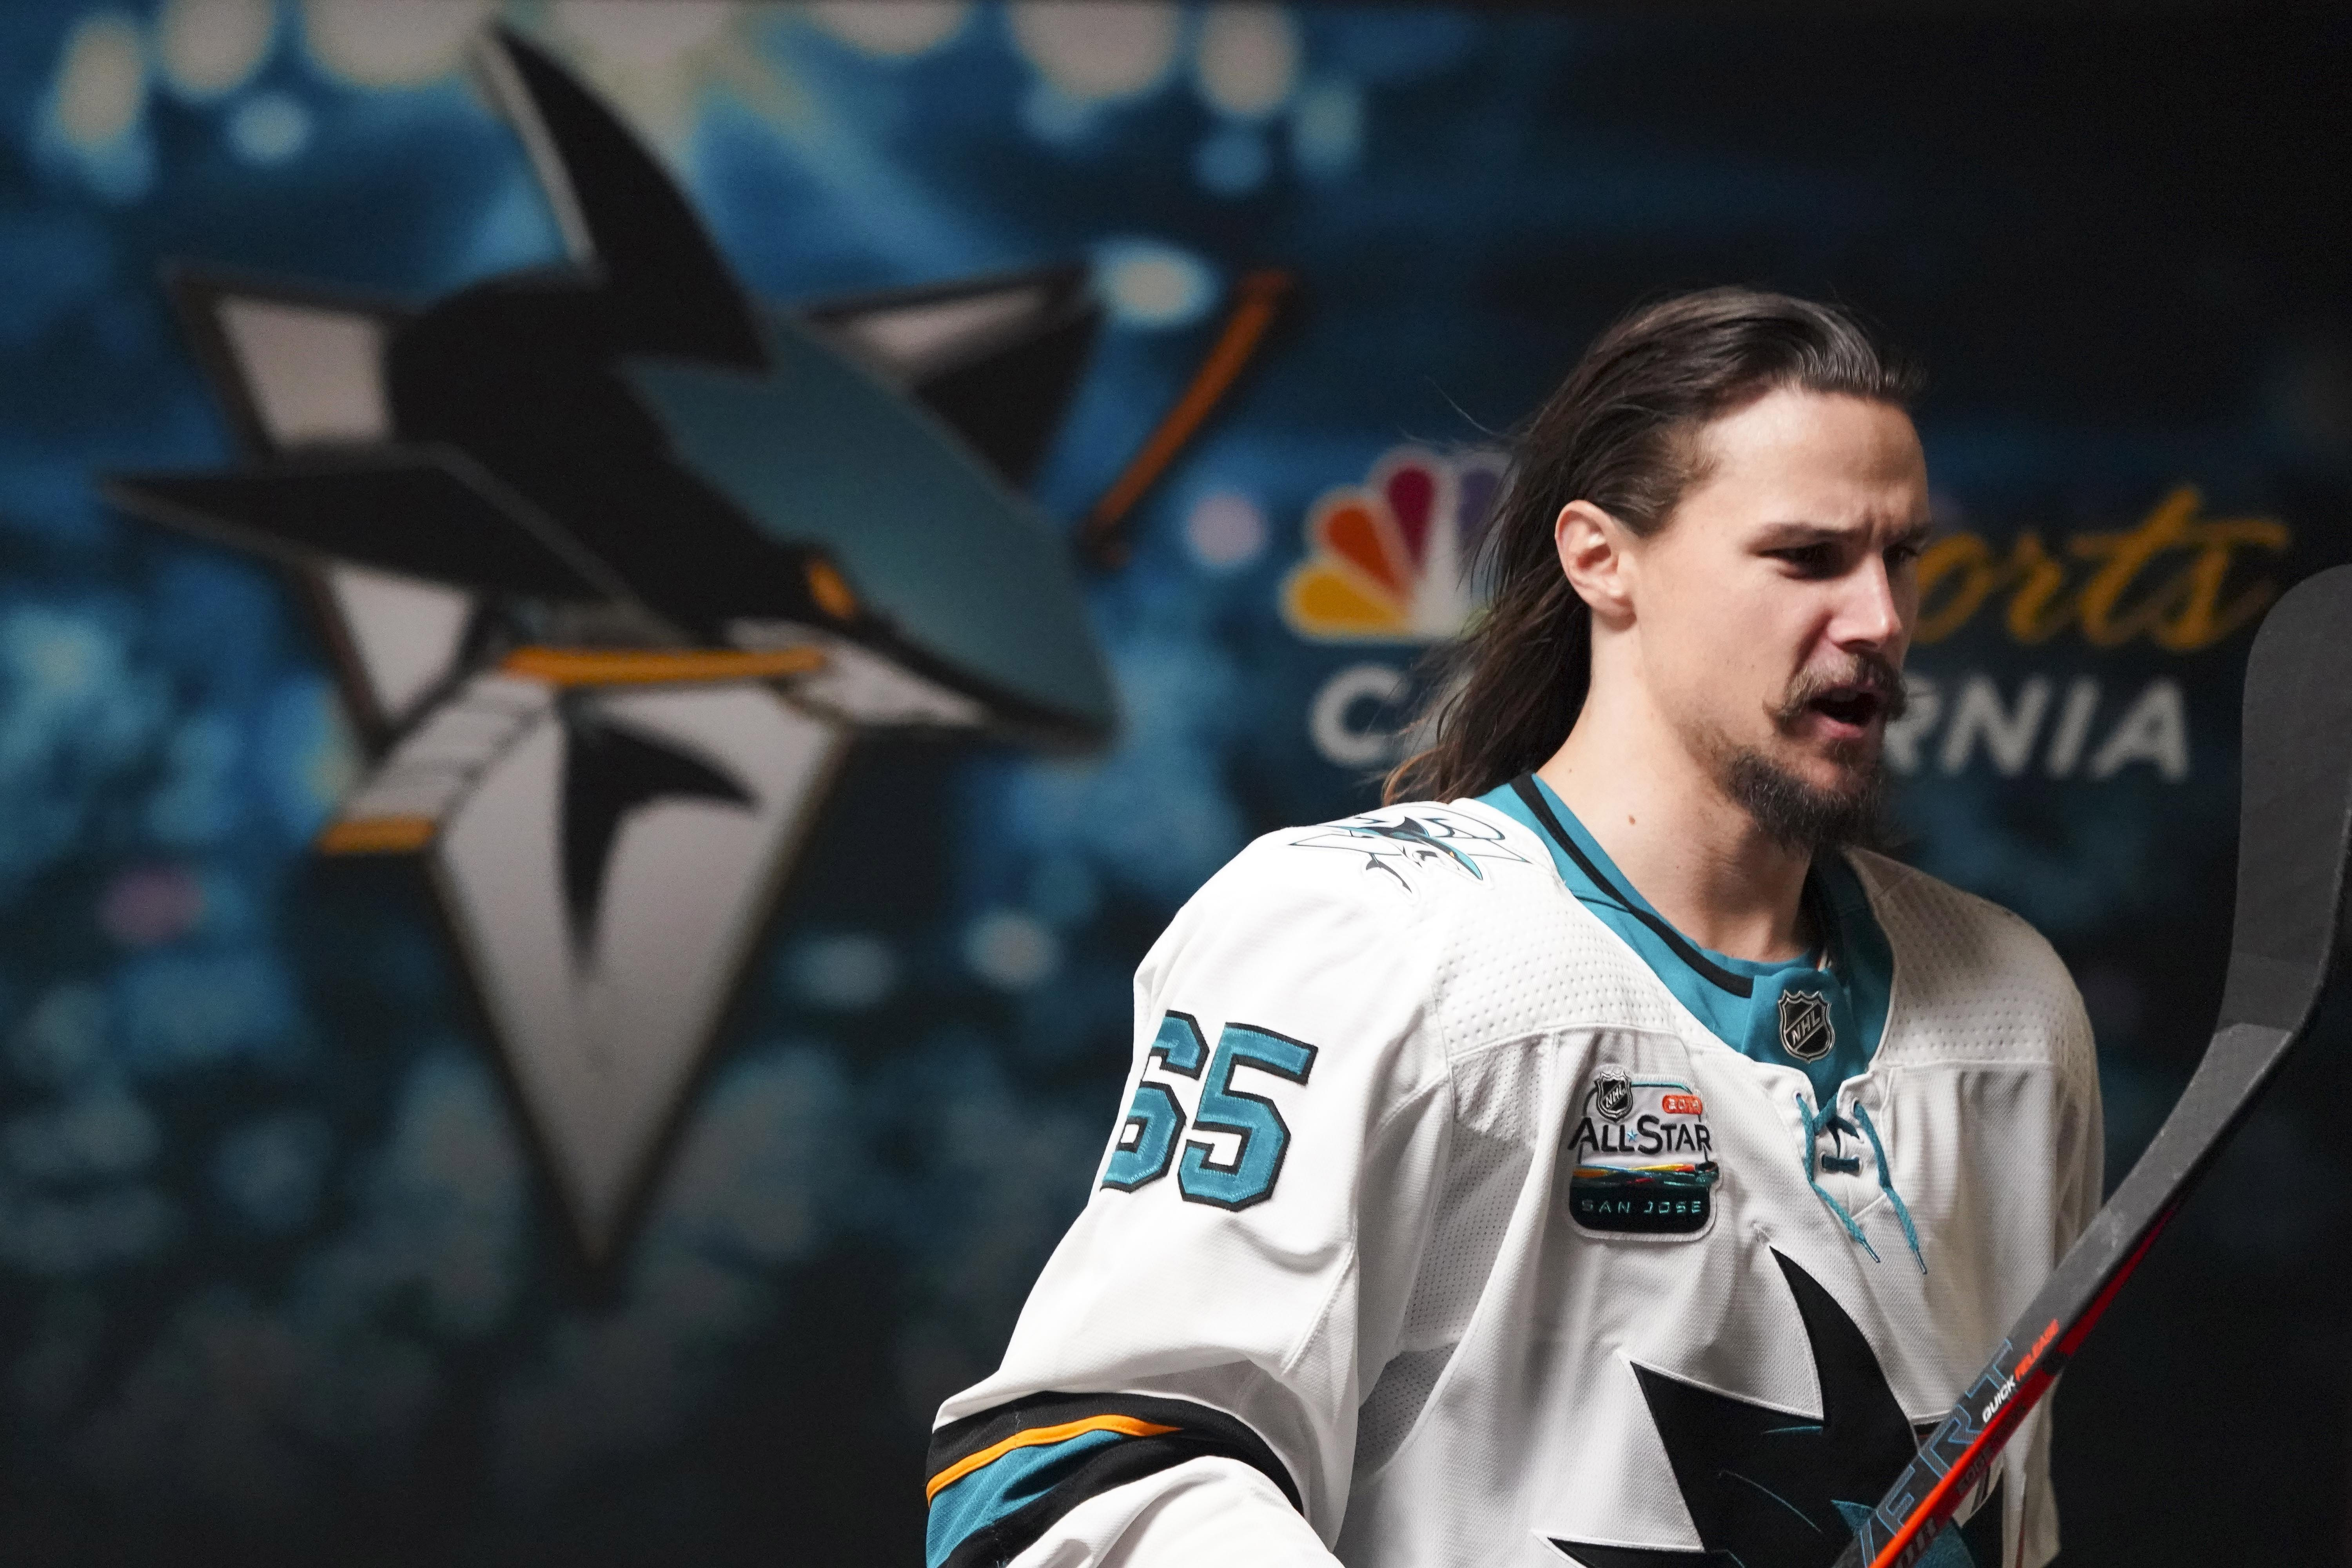 Oct 26, 2018; Raleigh, NC, USA; San Jose Sharks defenseman Erik Karlsson (65) walks out of the locker room before the game against the Carolina Hurricanes at PNC Arena. The Carolina Hurricanes defeated the San Jose Sharks 4-3 in the shoot out.